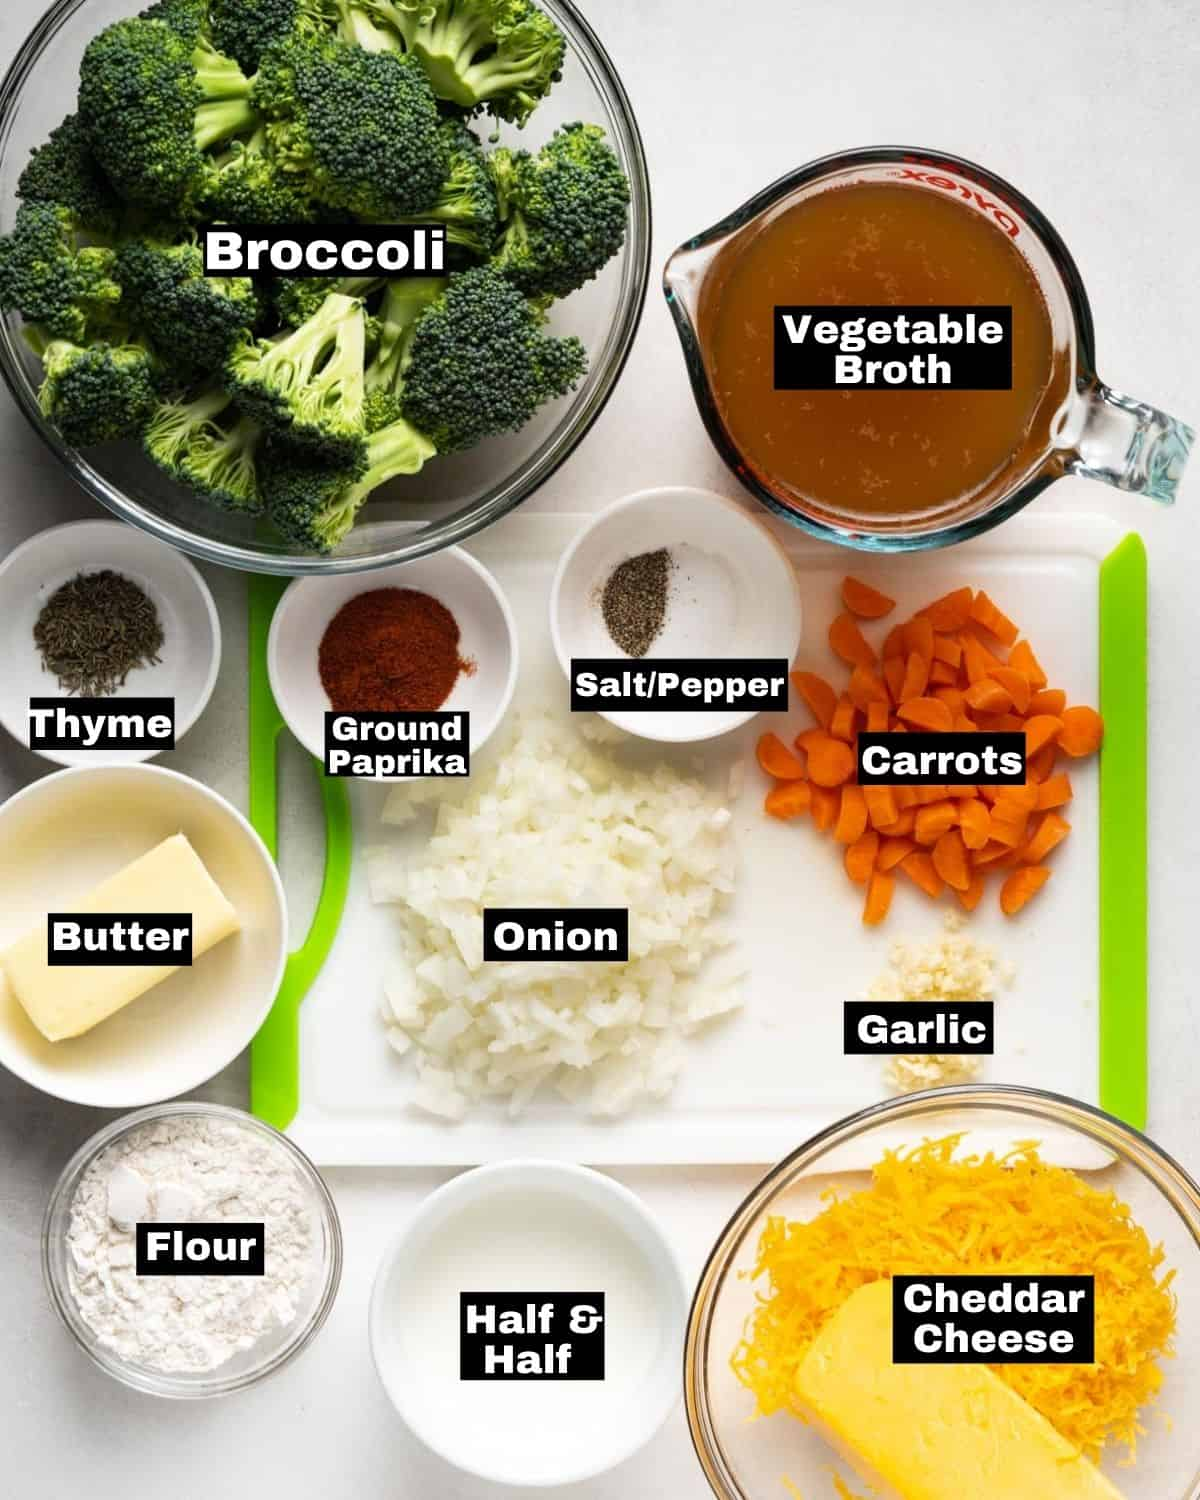 Ingredients for Instant Pot Broccoli Cheddar Soup